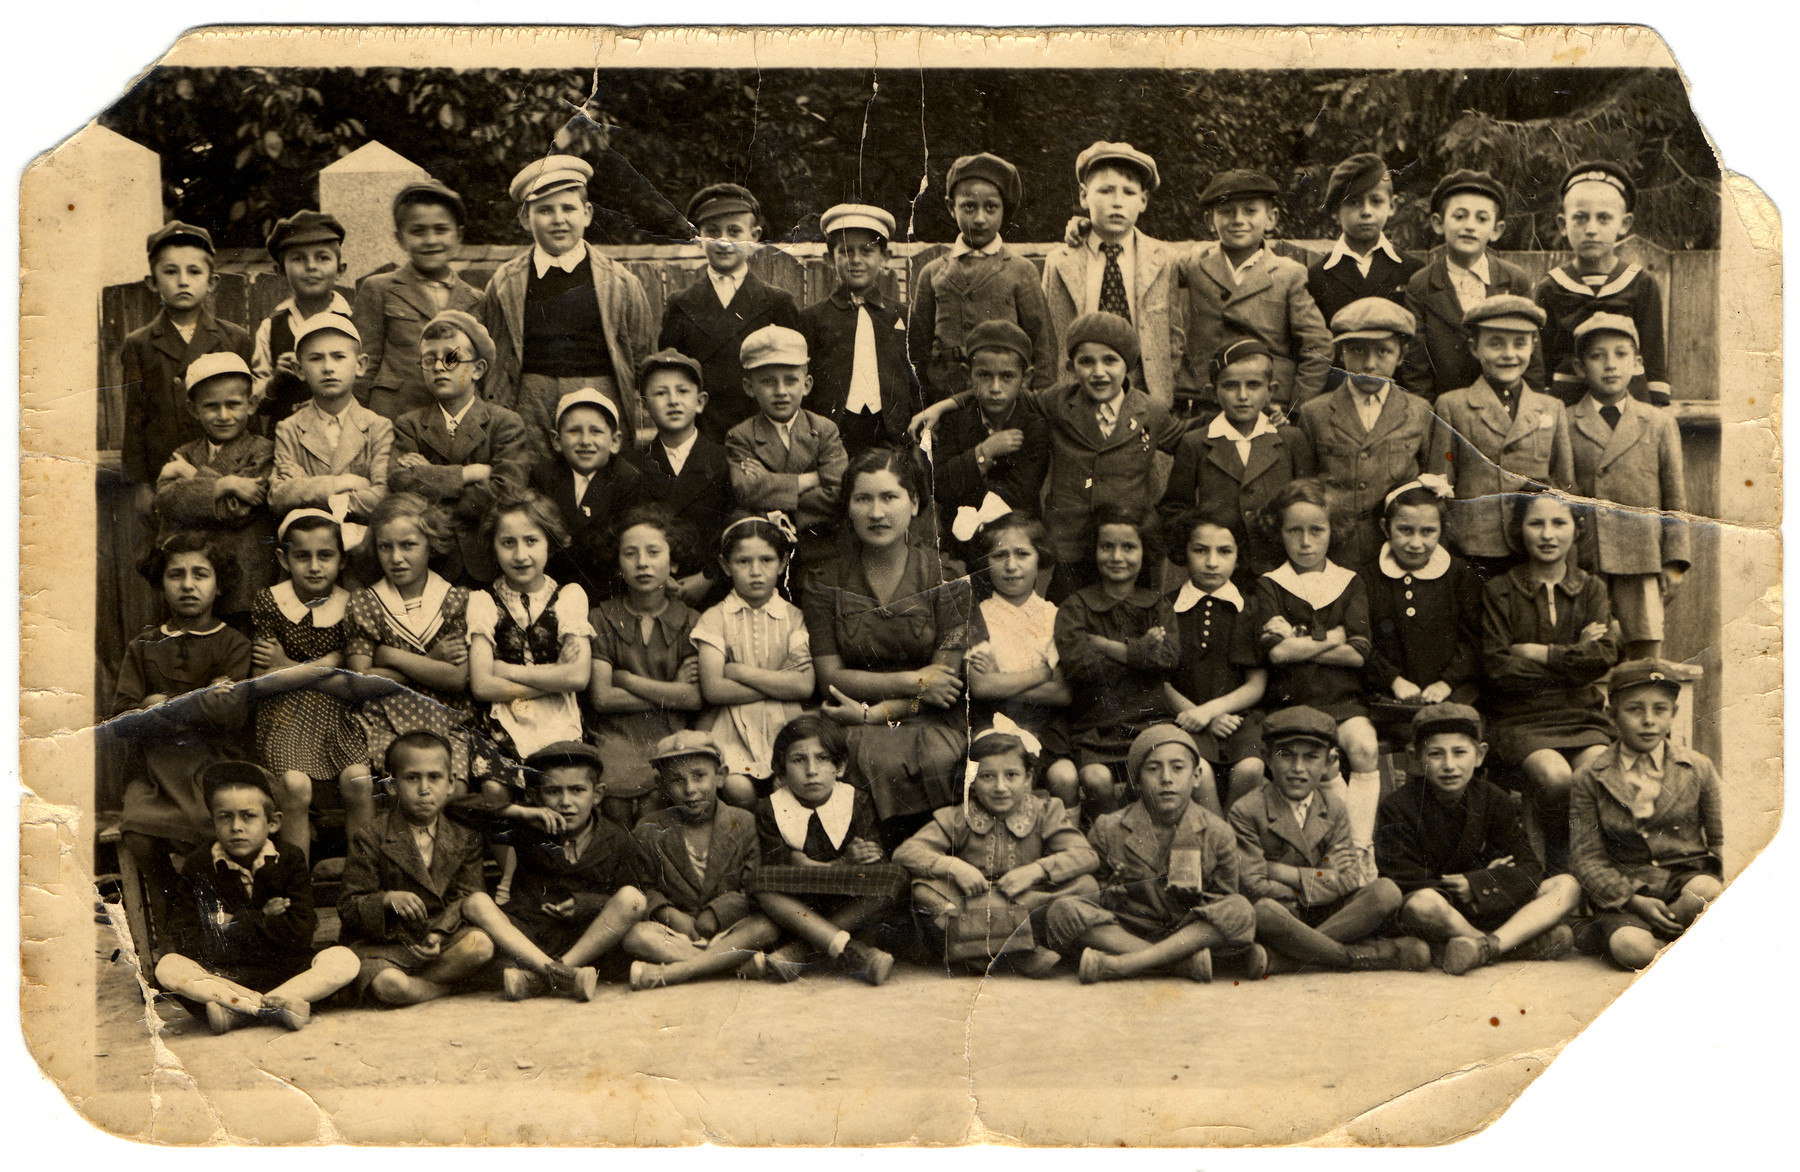 Group portrait of children in the third grade class of the Hebrew Gymnasium in Mukachevo.  Among those pictured are Ruth Friedman (second row, sixth from left) and Eugen (Tuli) Shoenfeld (top row, fifth from left).  The teacher's name was Miss Mermelstein.